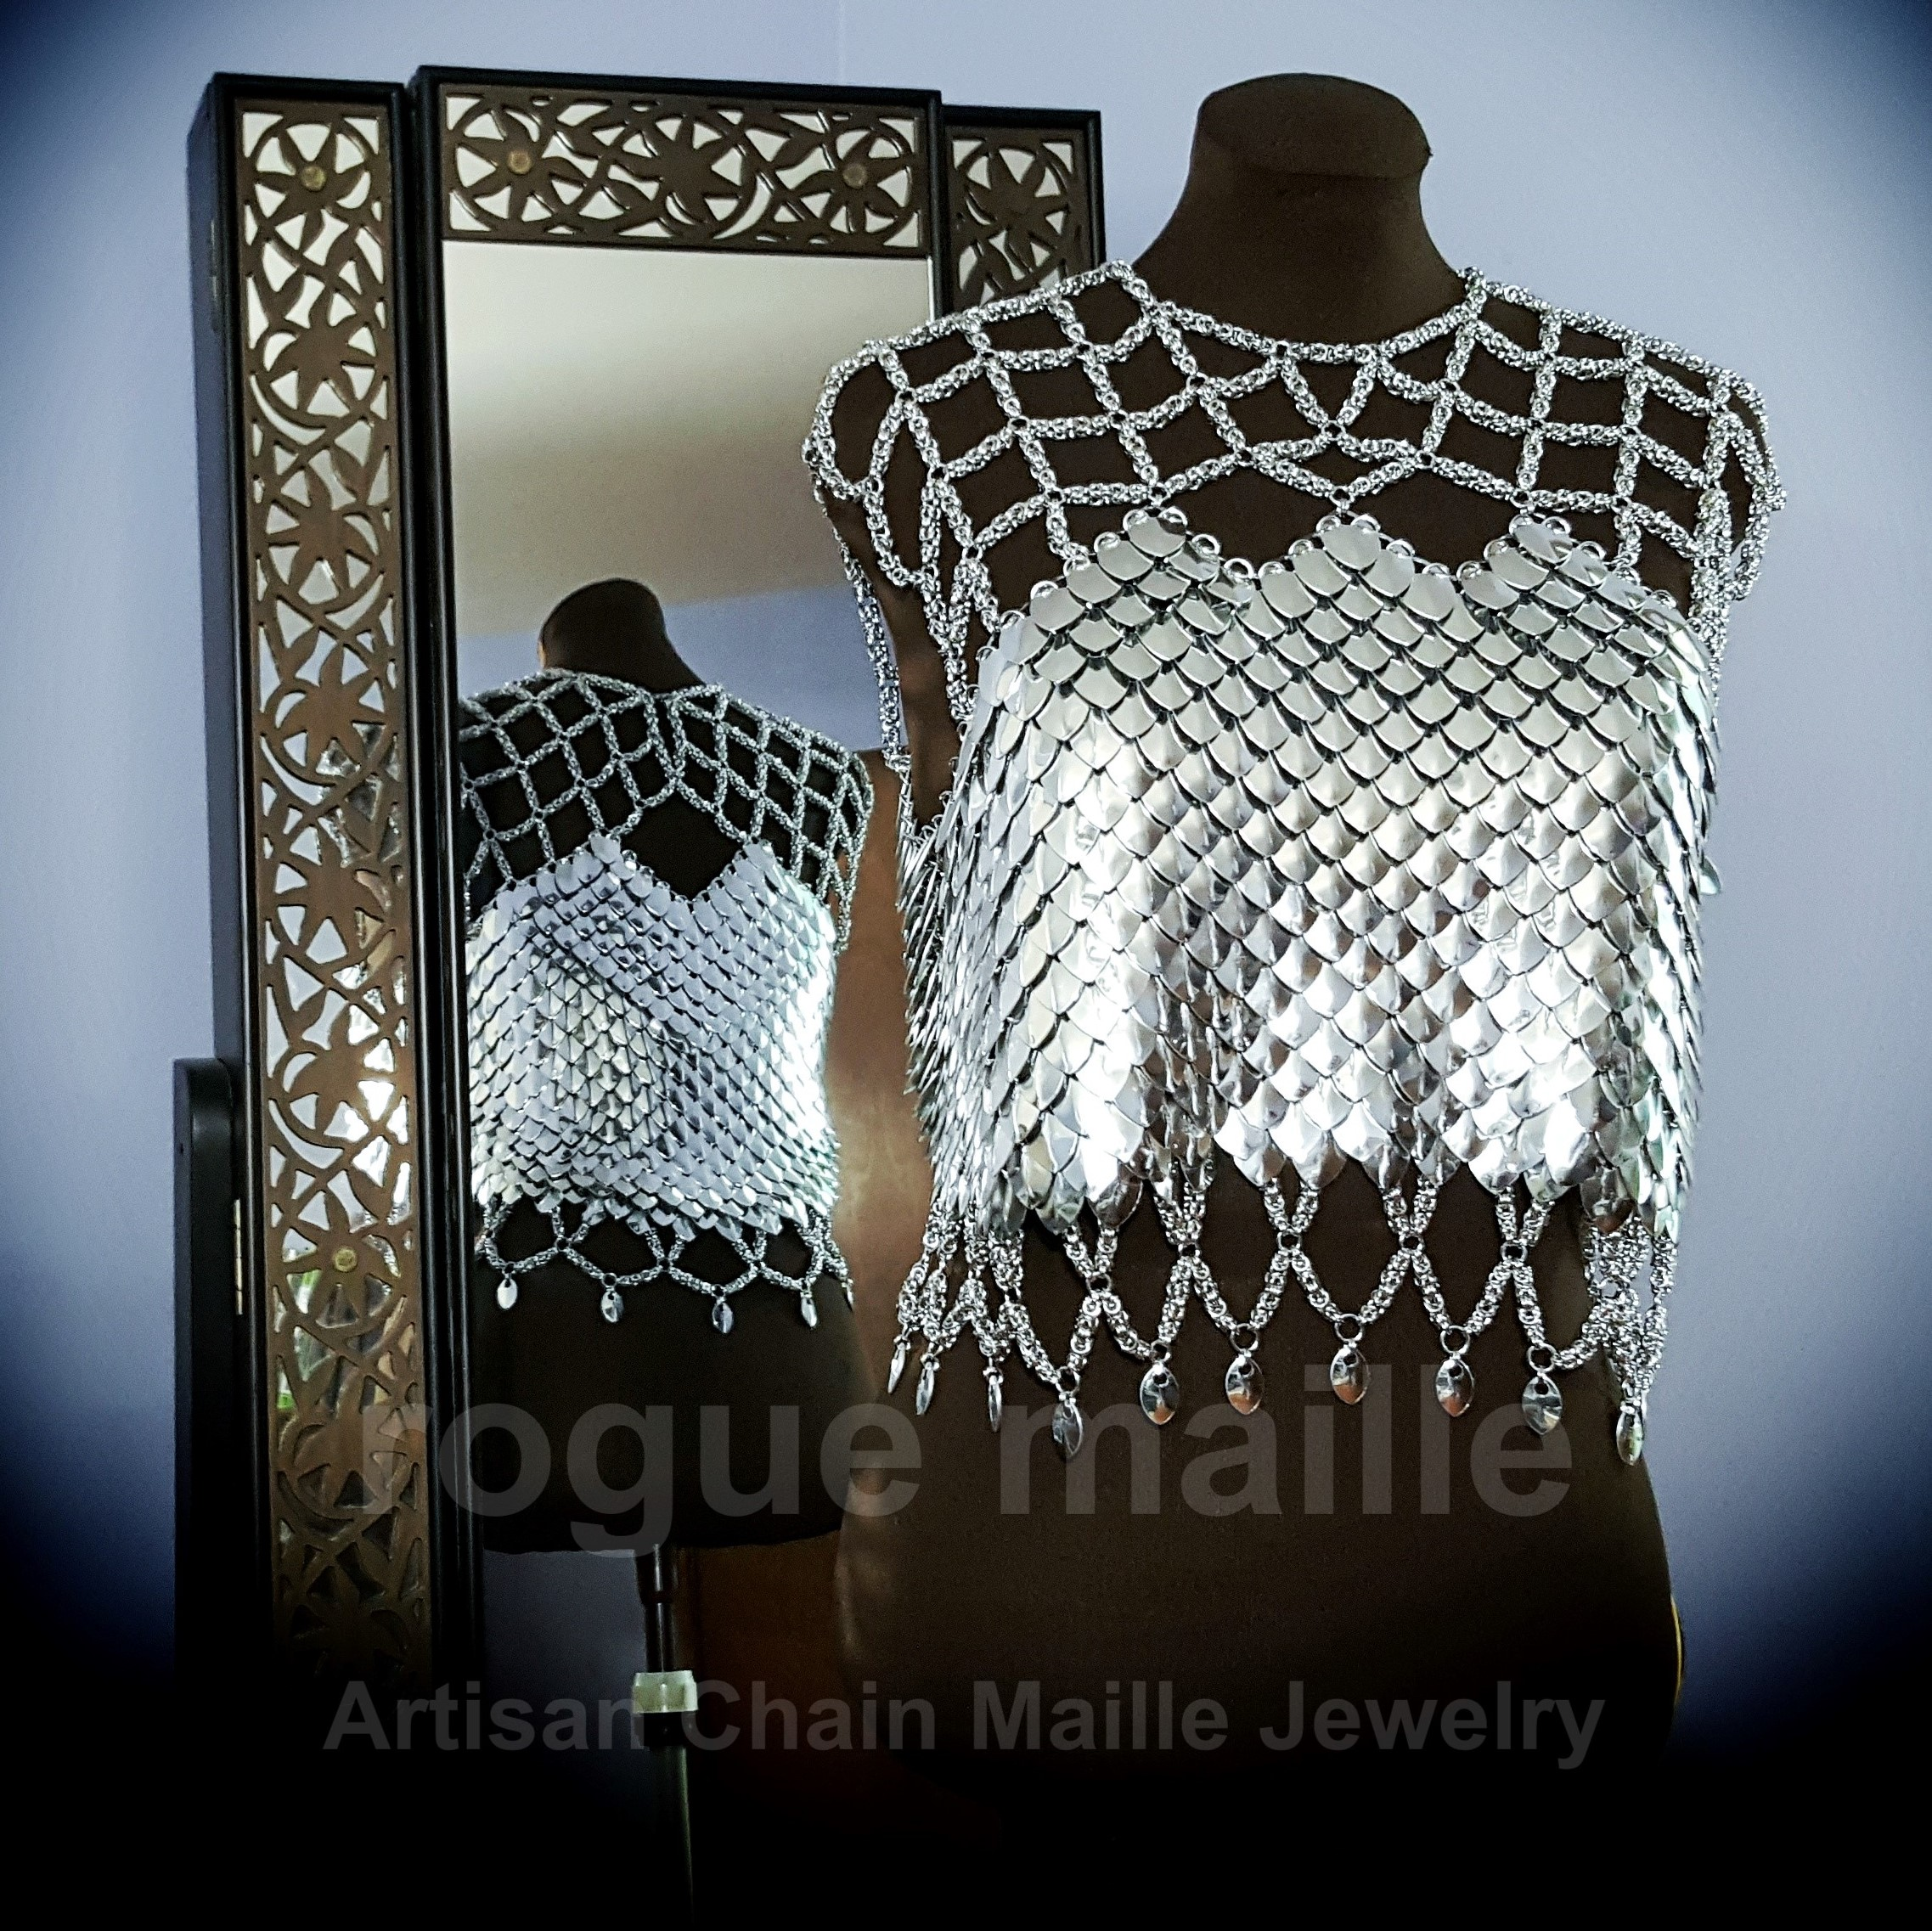 Rogue Maille armor Merchant Vendor Shopping Marketplace